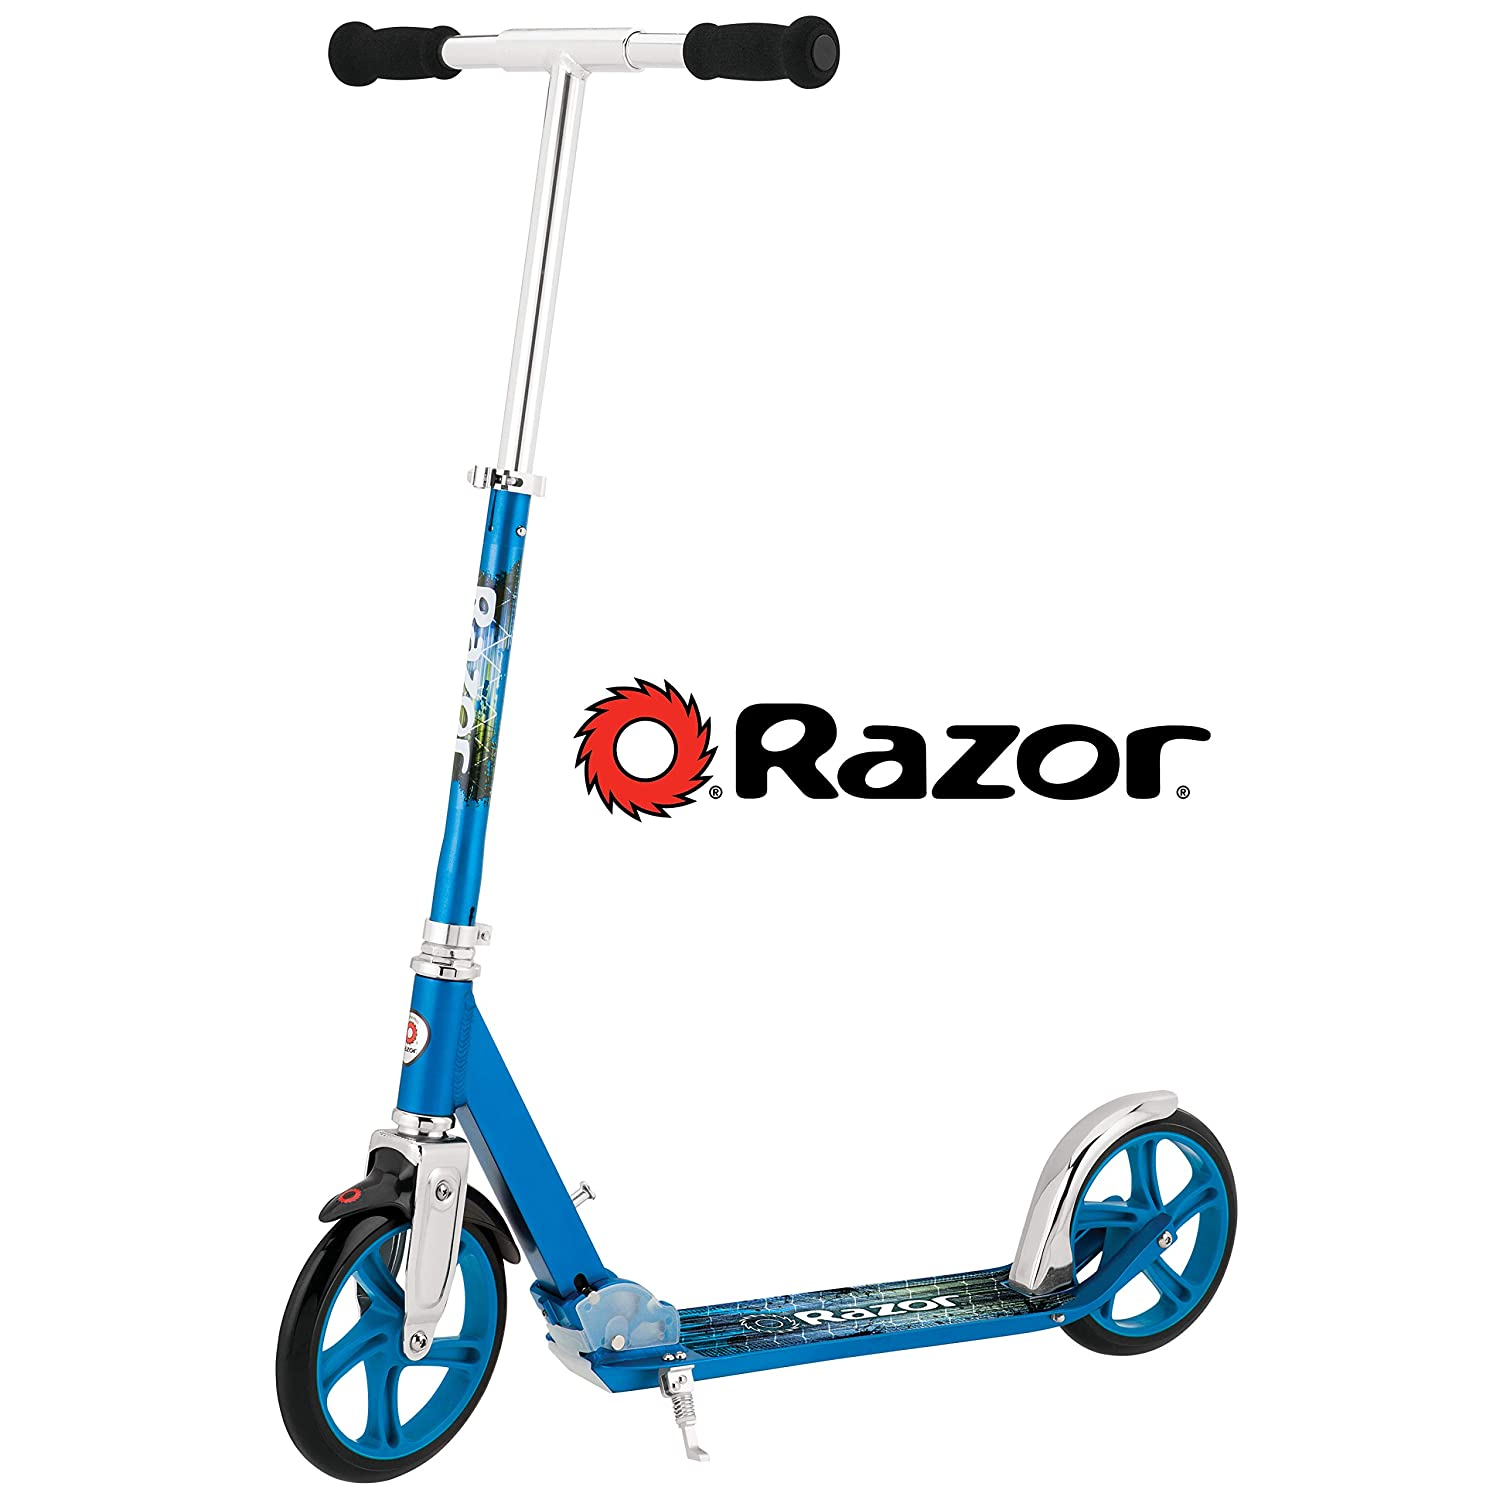 Top 10 Best Razor Scooter (2020 Reviews & Buying Guide) 1